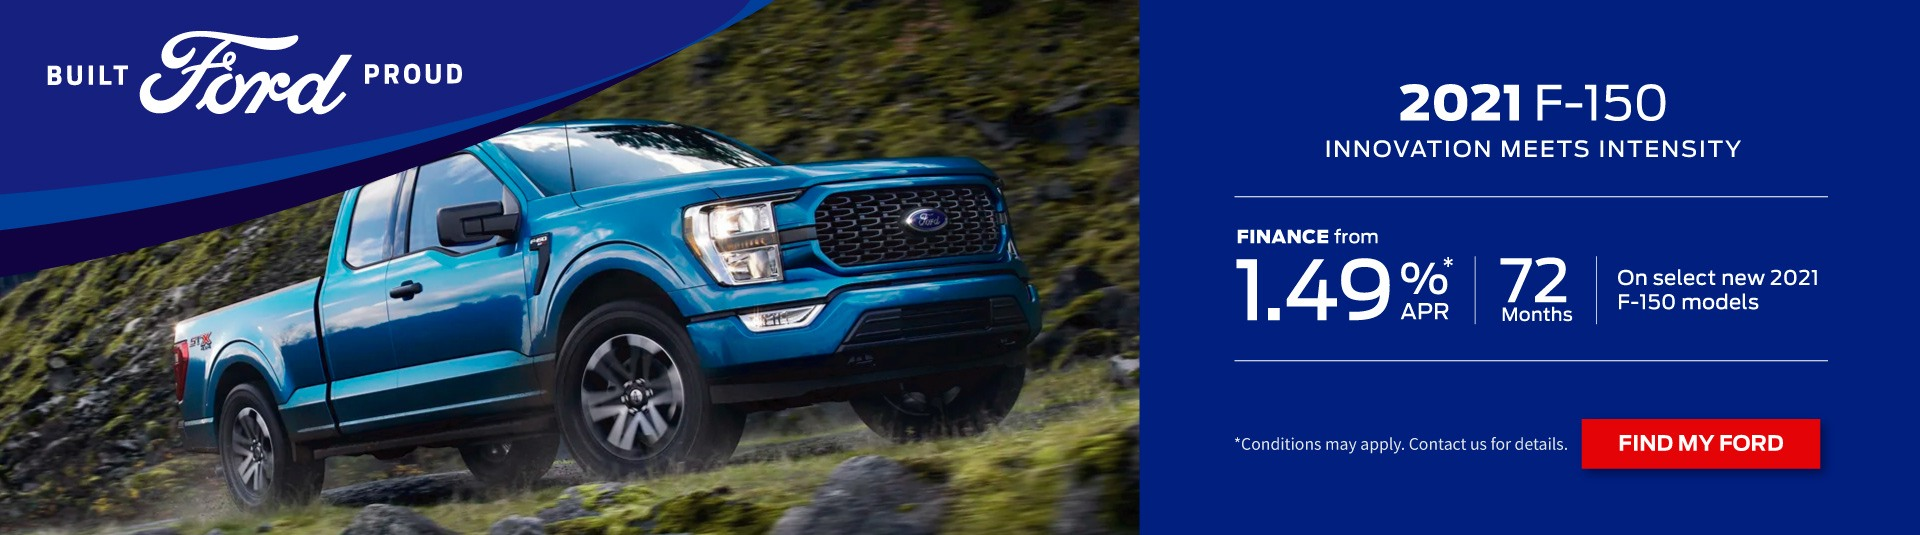 Bayfield Ford Barrie 2021 F150